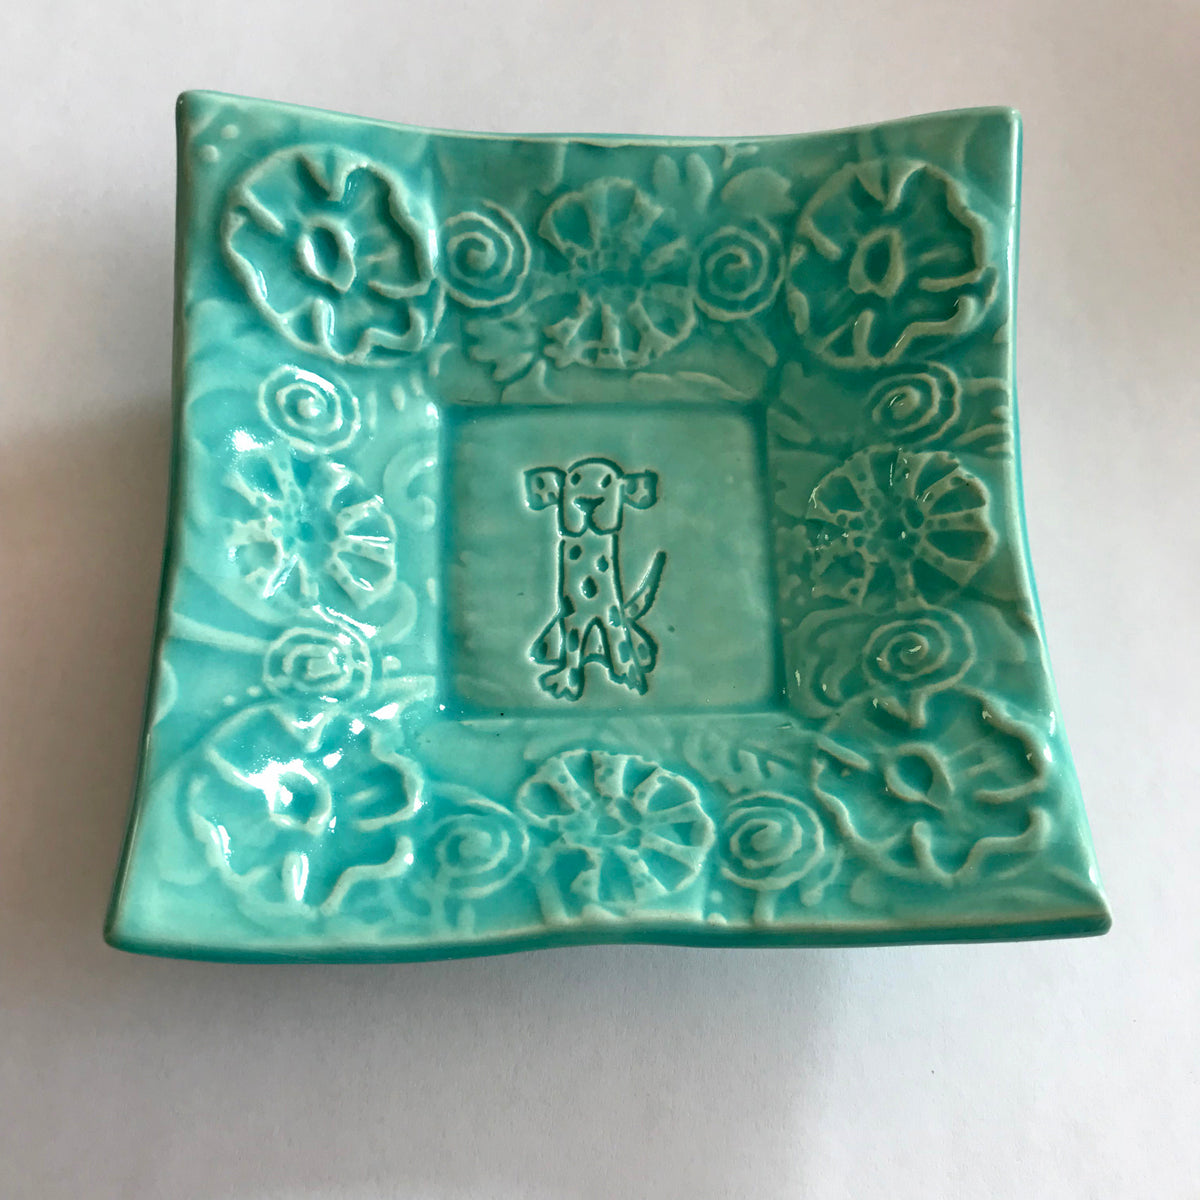 Turquoise glaze enhances dog design on small dish handmade by Lorraine Oerth.